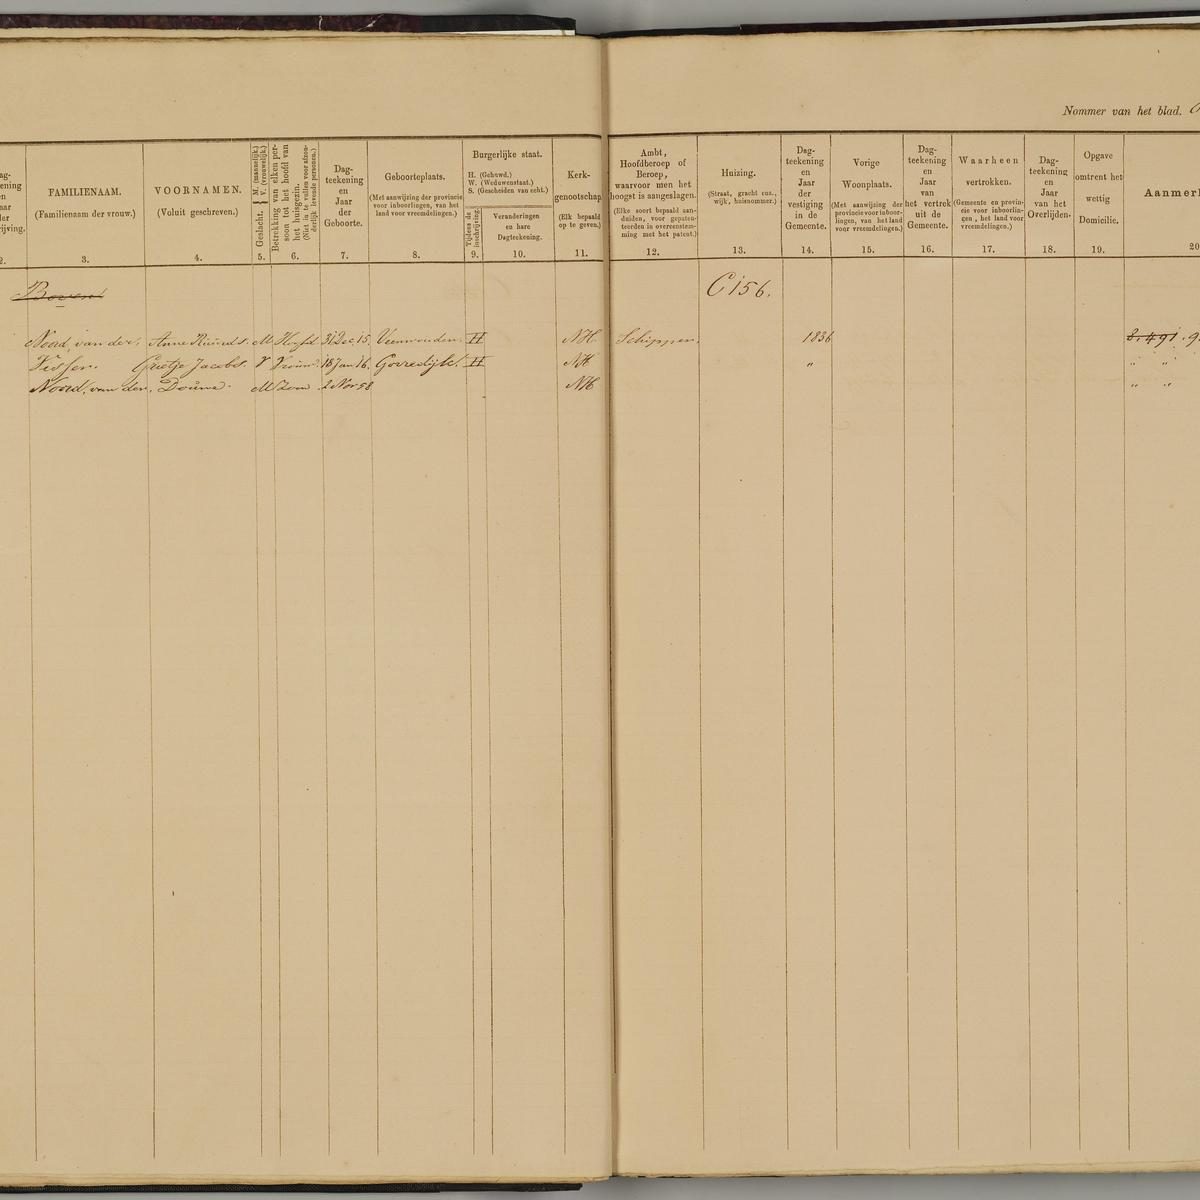 Population registry, Leeuwarden, 1859-1876, sheet 816